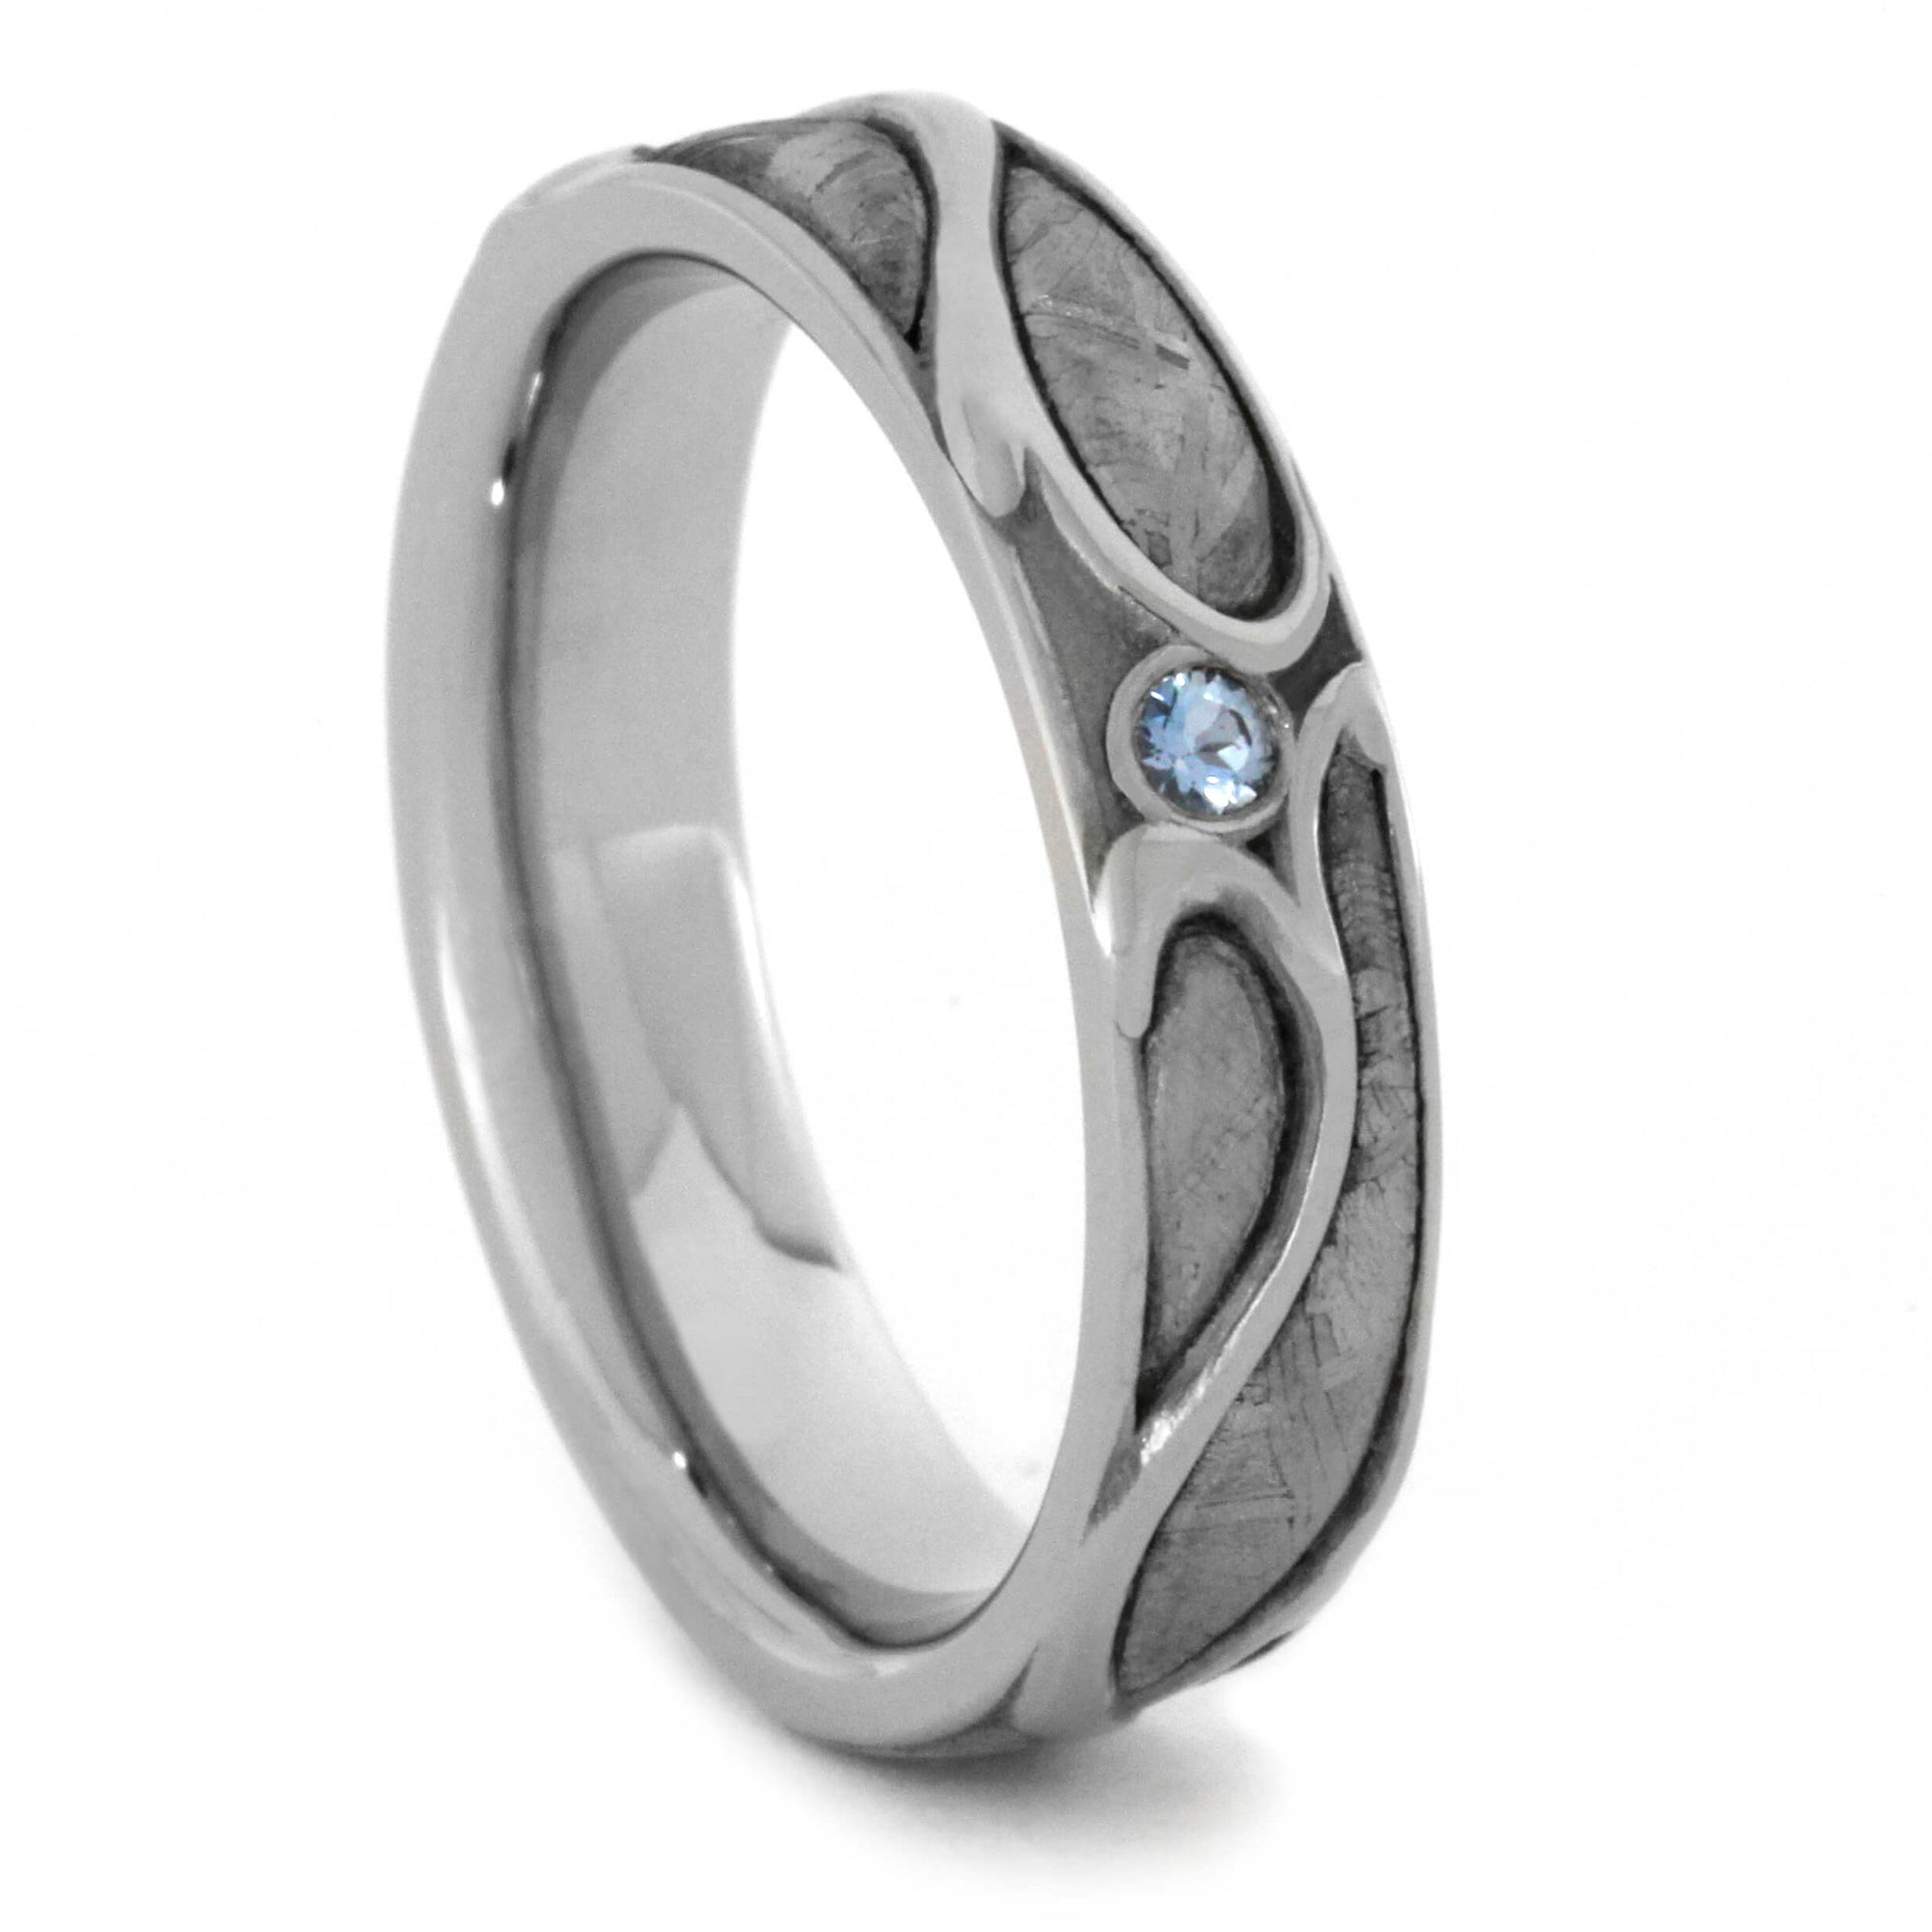 Aquamarine Wedding Ring, Meteorite Ring in Art Nouveau Design